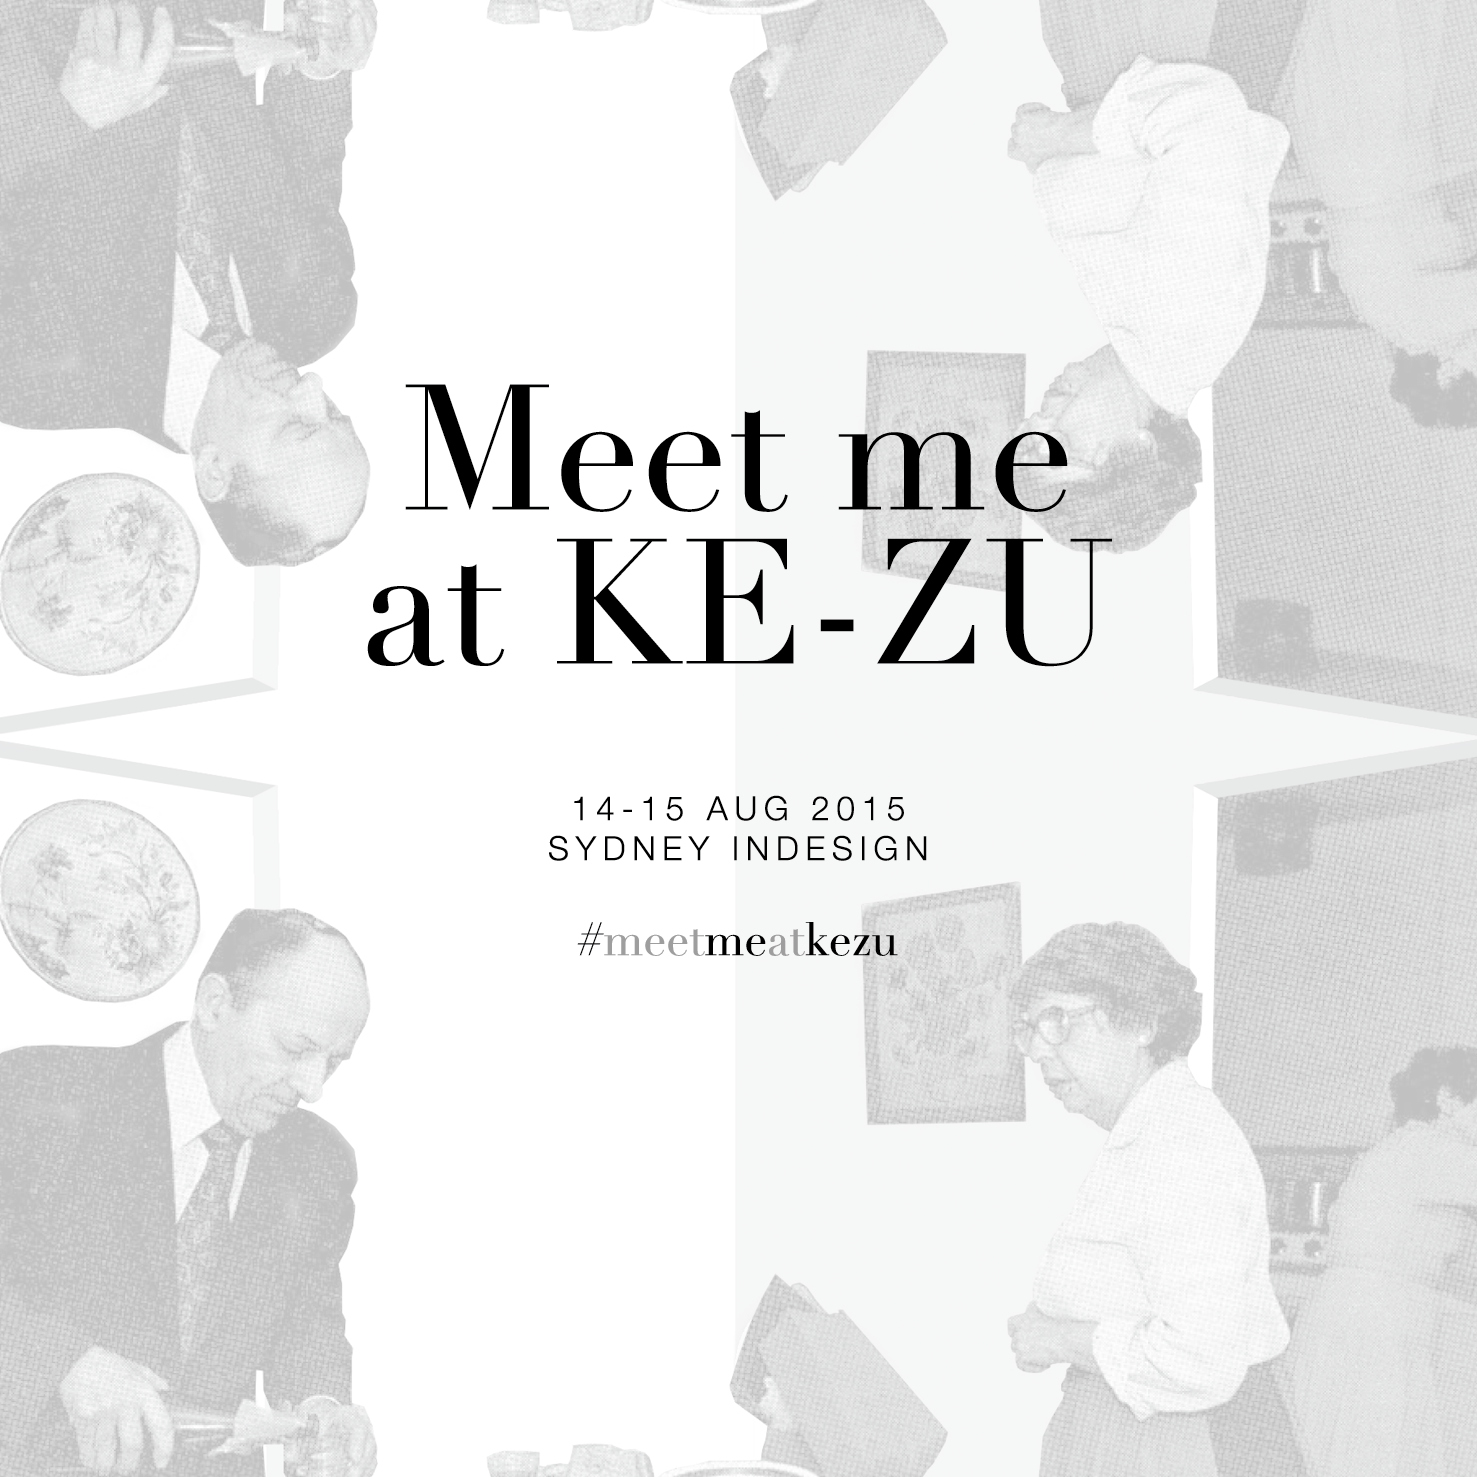 Square_Instagram_Meet me at KE_ZU